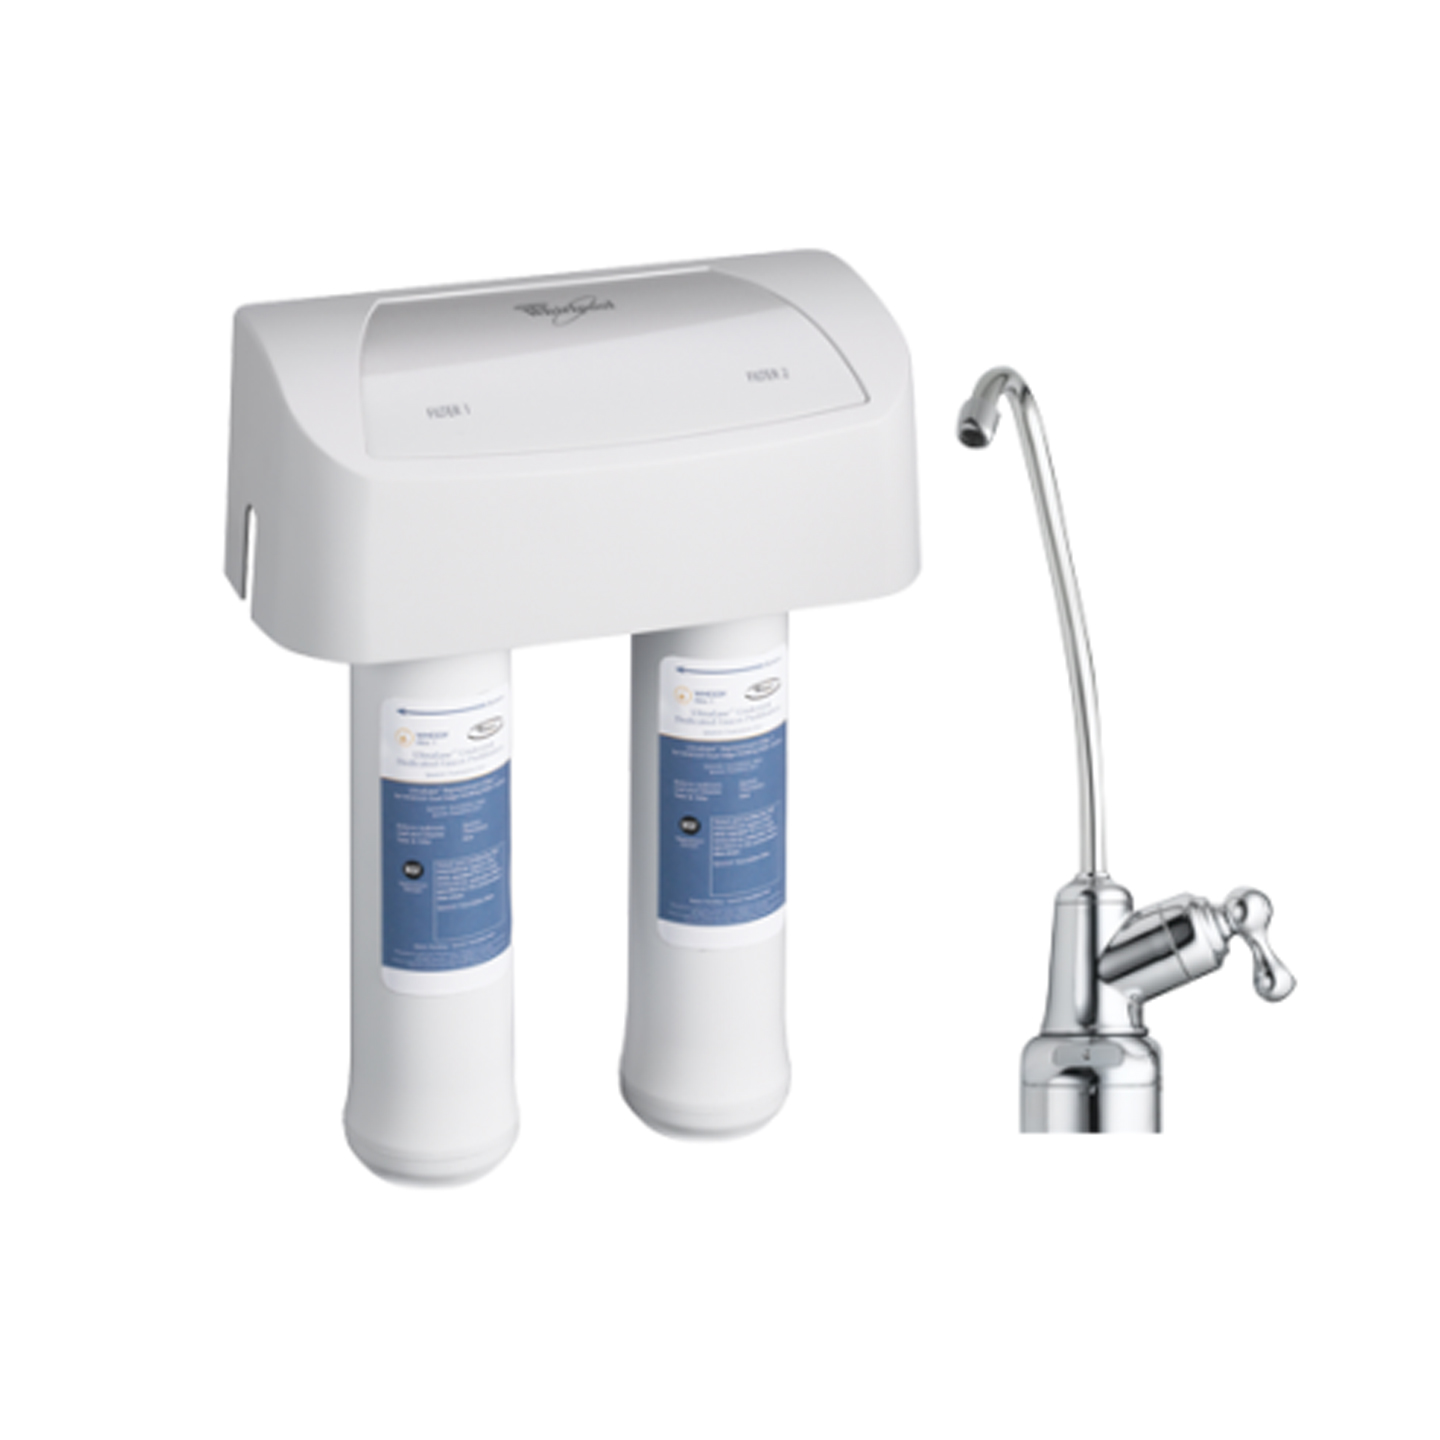 Image Result For Whirlpool Under Sink Water Filtration System